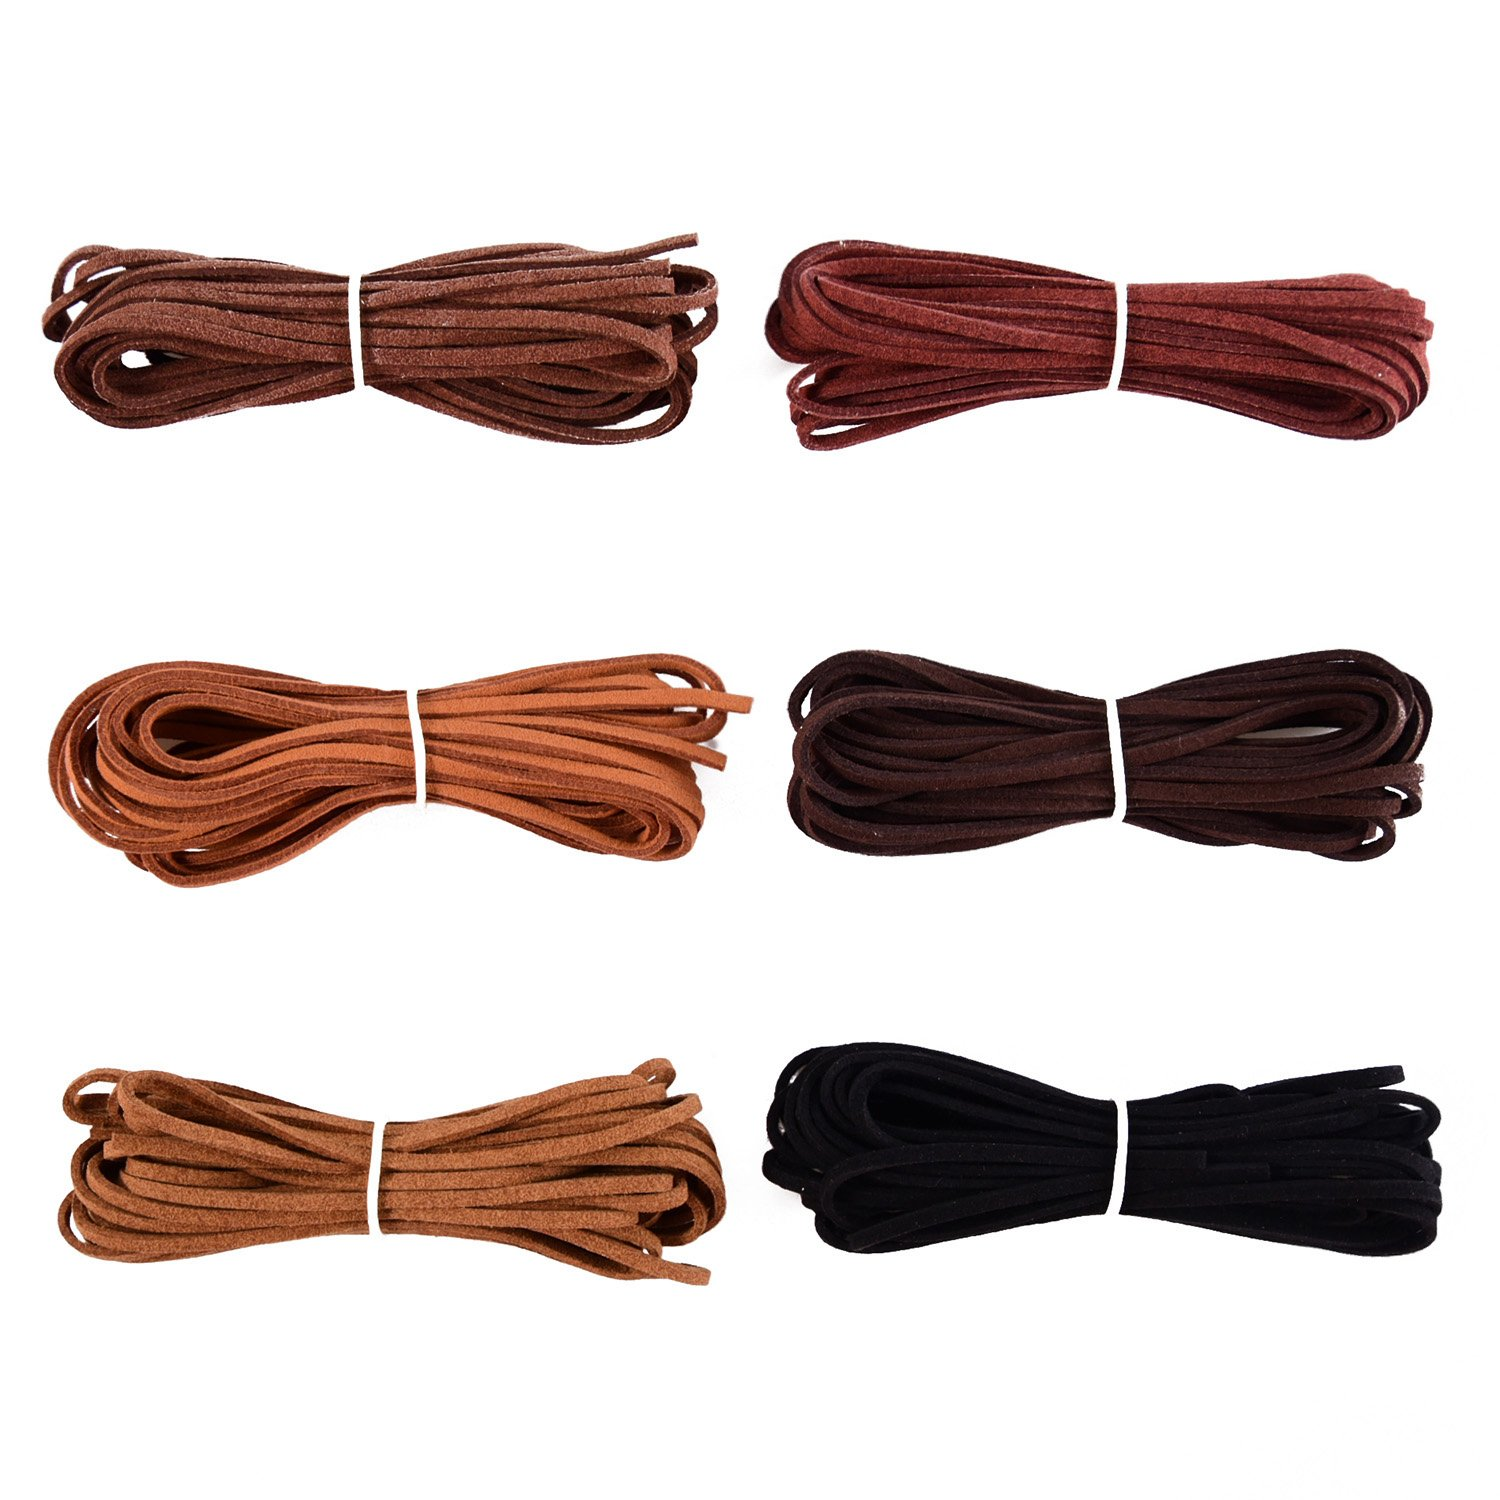 3 mm x 5 m Leather Cord String for Bracelet Necklace Beading Jewelry DIY Handmade Crafts, 6 Pieces, 6 Colors Shappy 4336861919